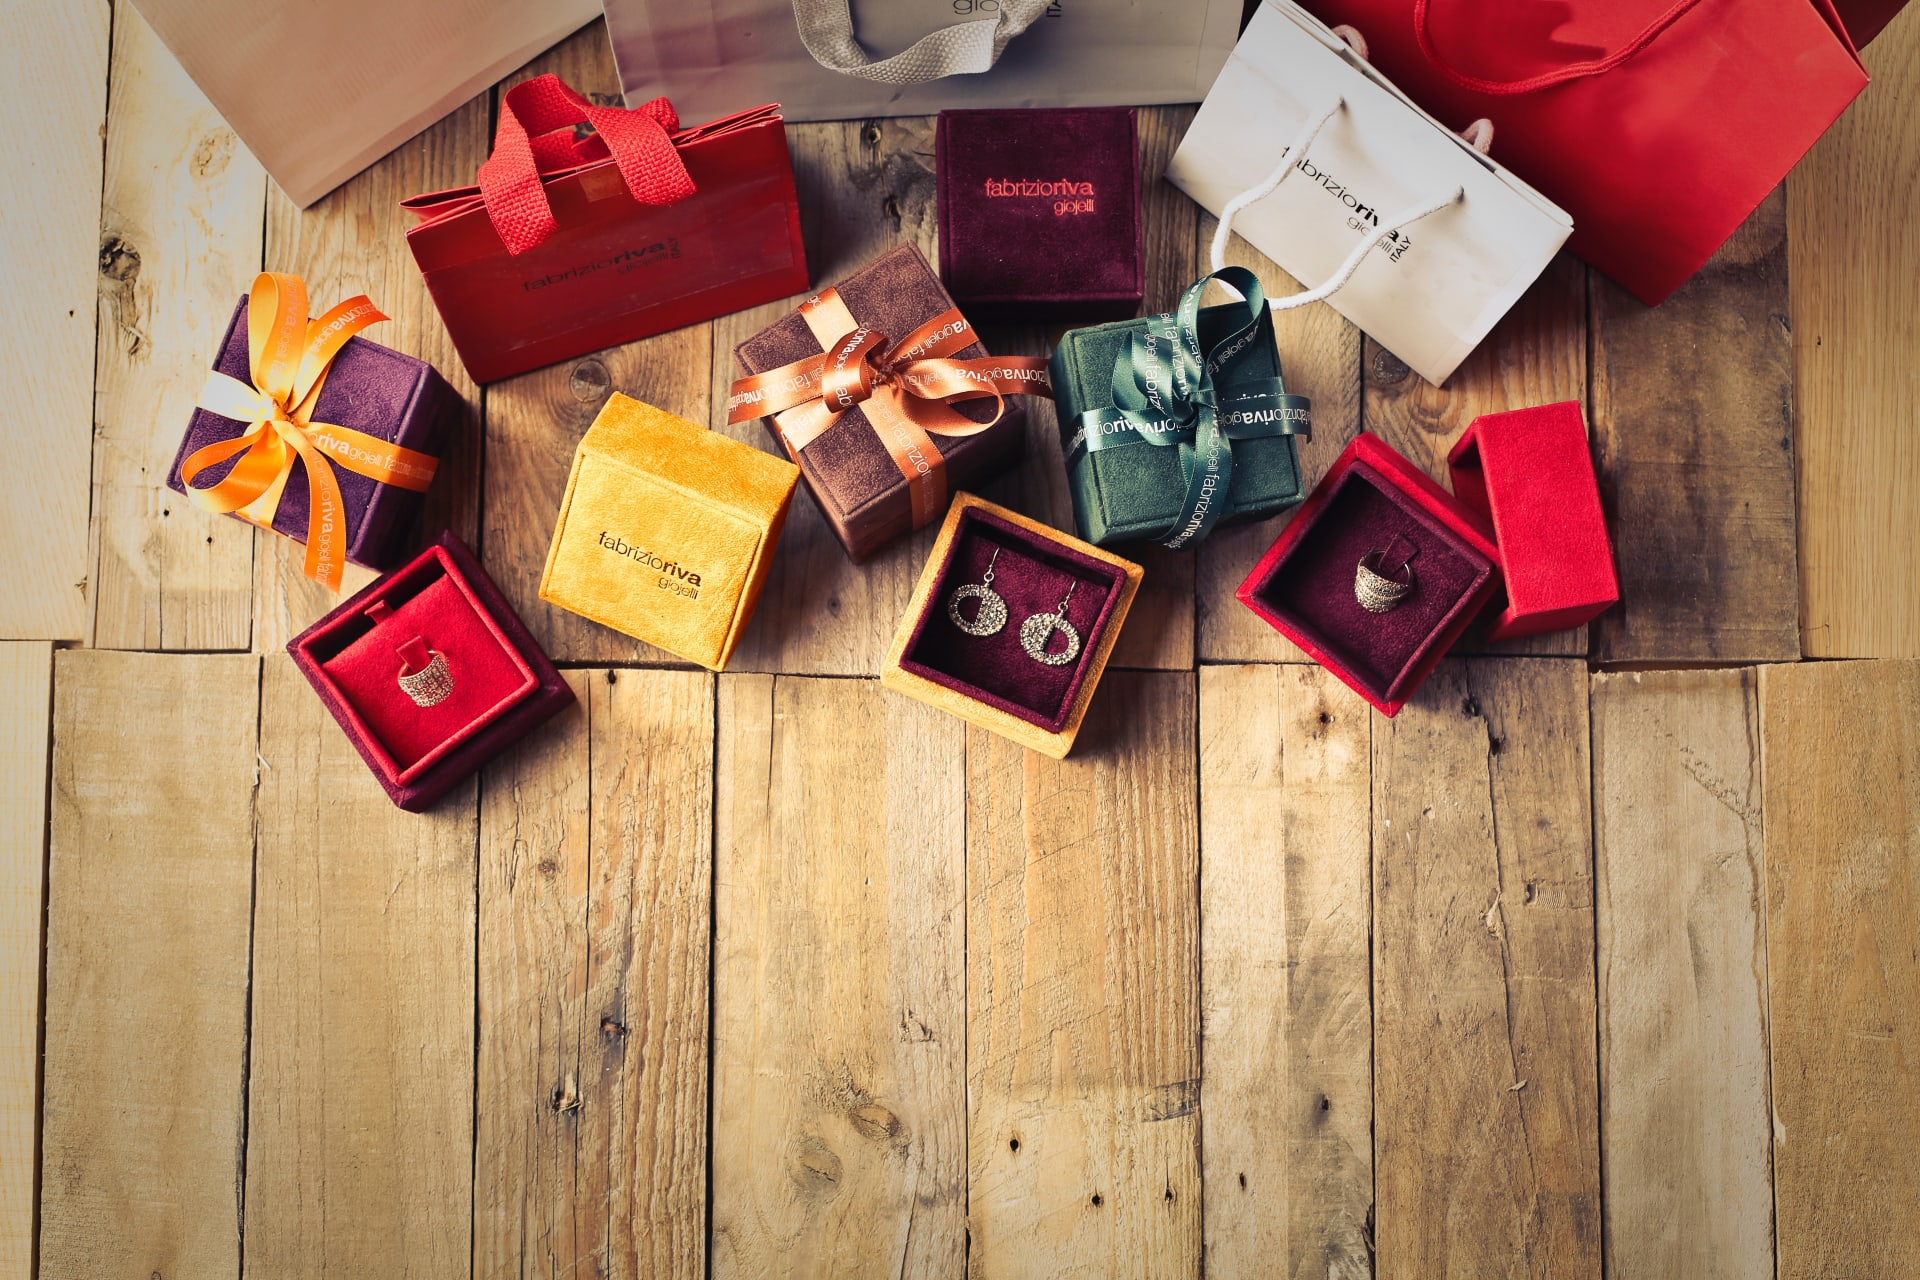 assorted-gift-boxes-on-brown-wooden-floor-surface-1050244-w1920.jpg